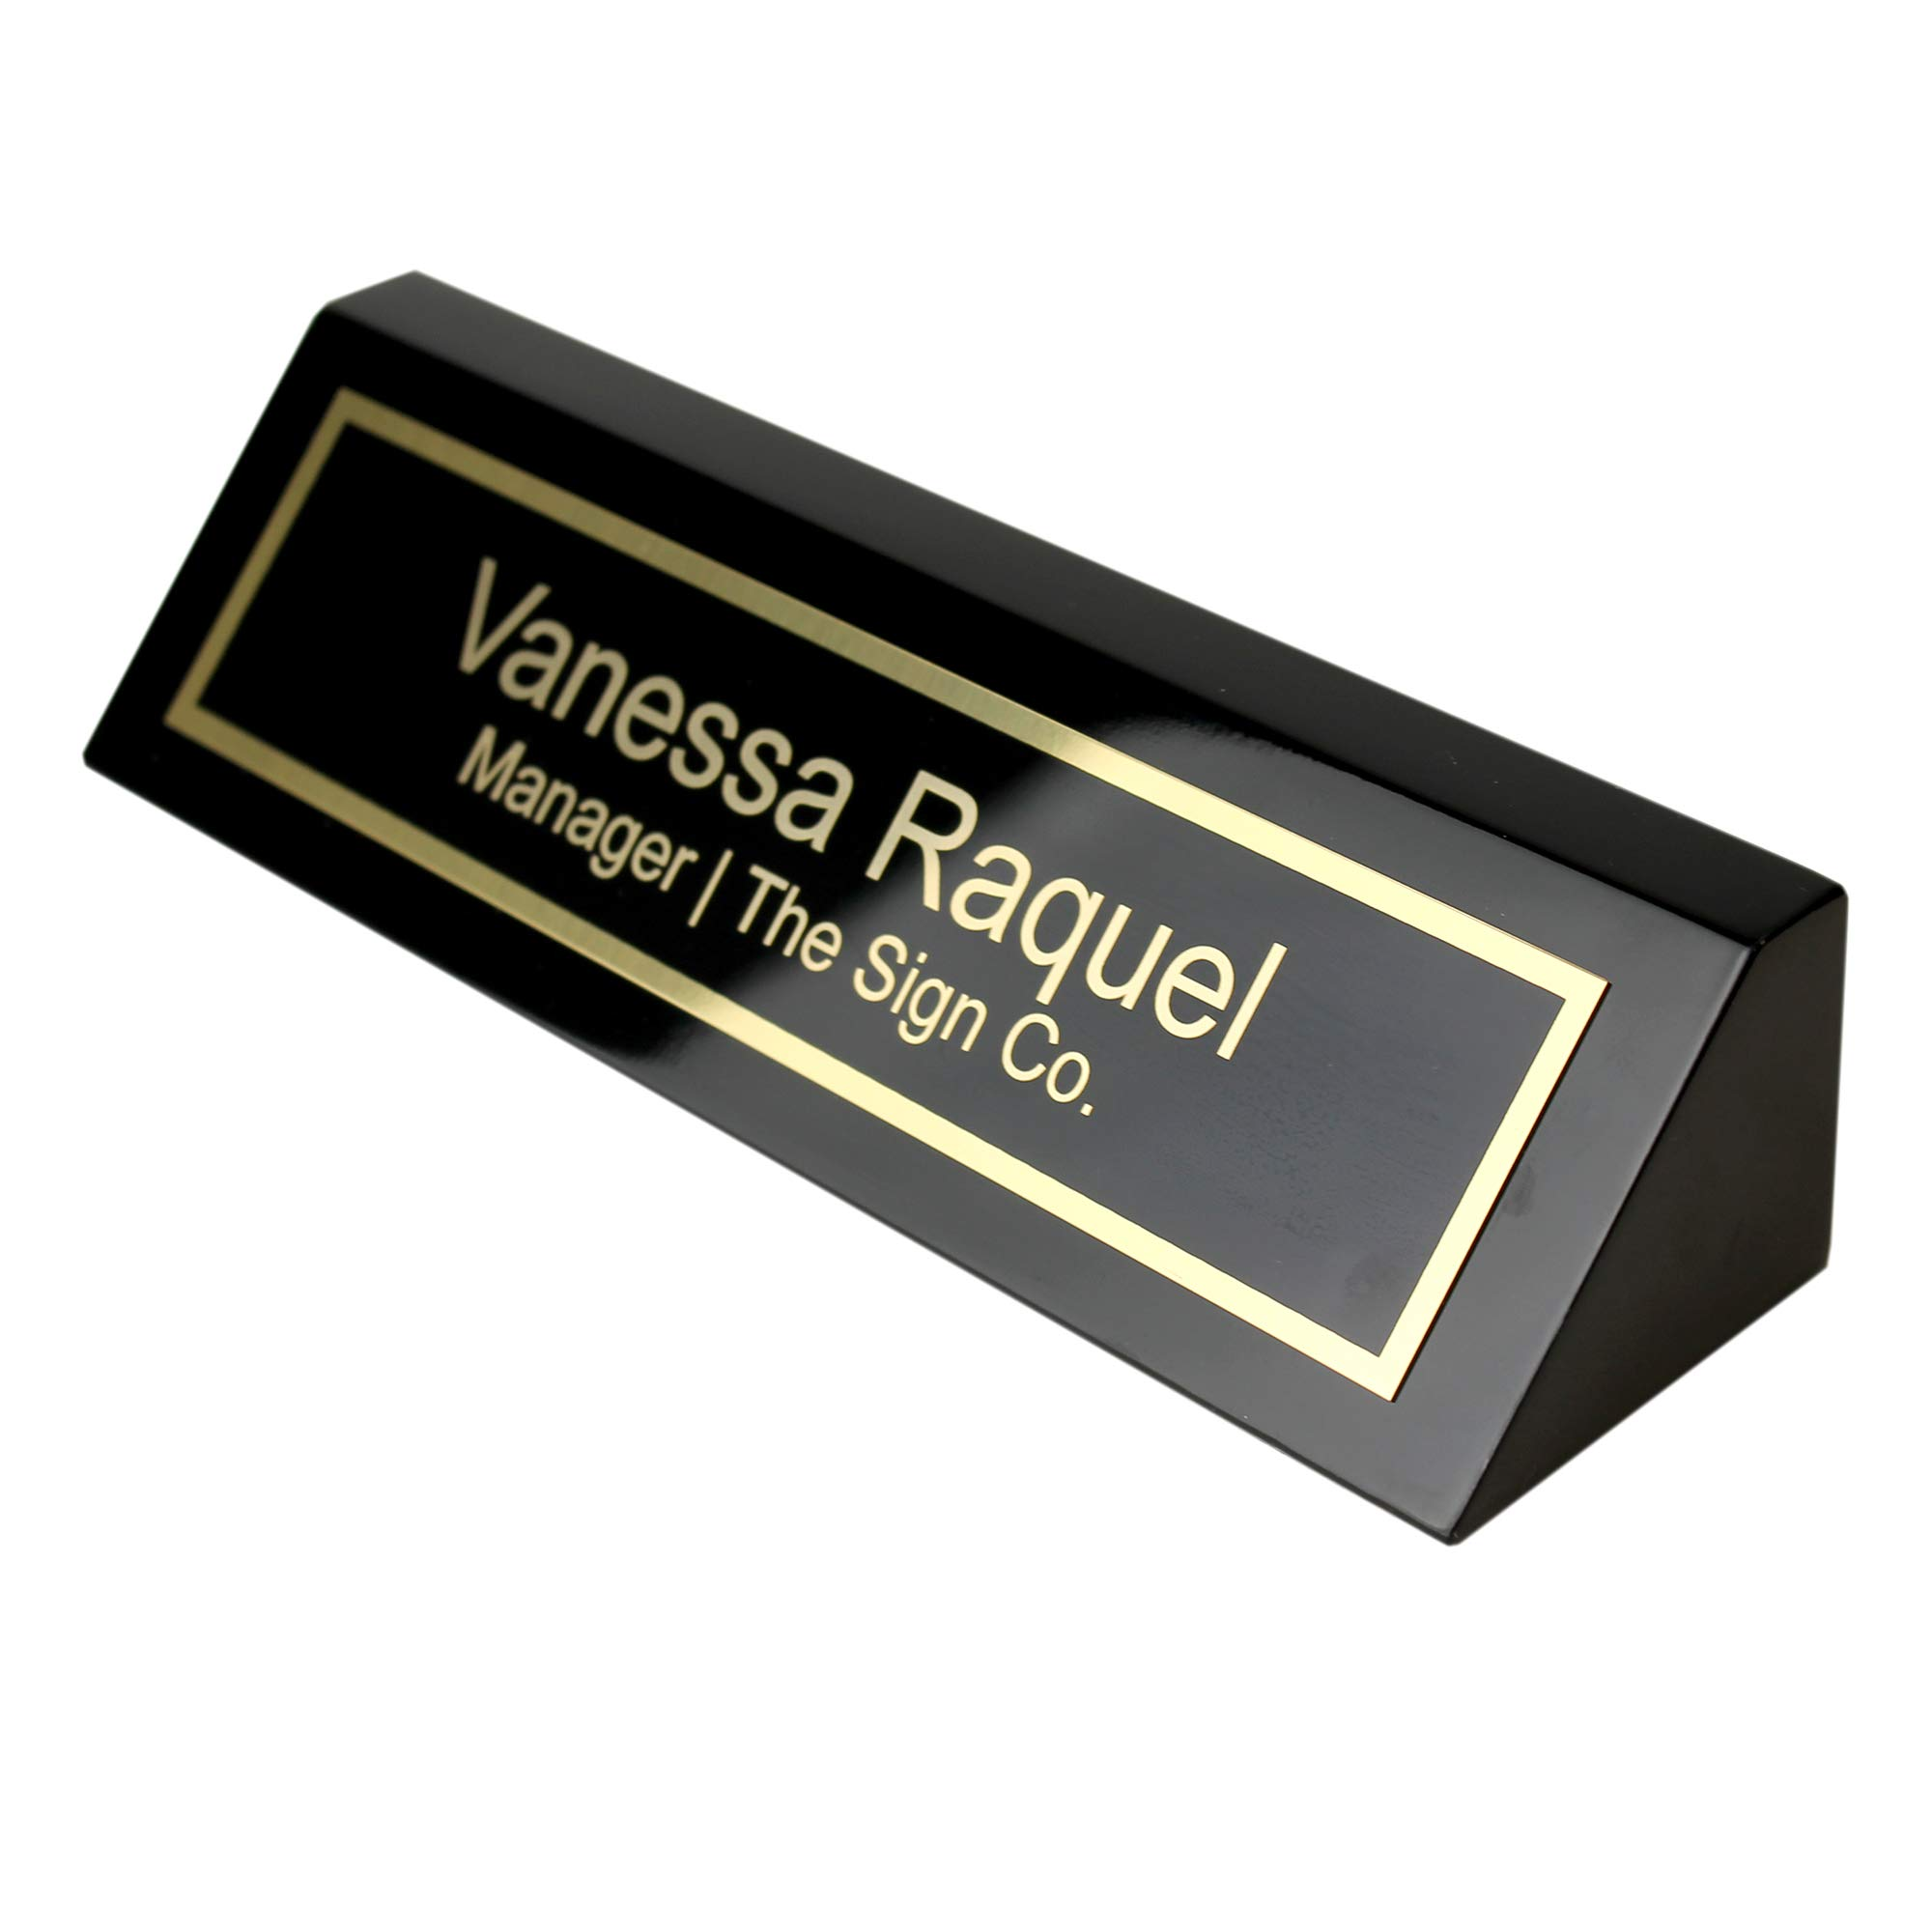 Personalized Business Desk Name Plate - Office Name Plate for Desk - Black Piano - Includes Engraving